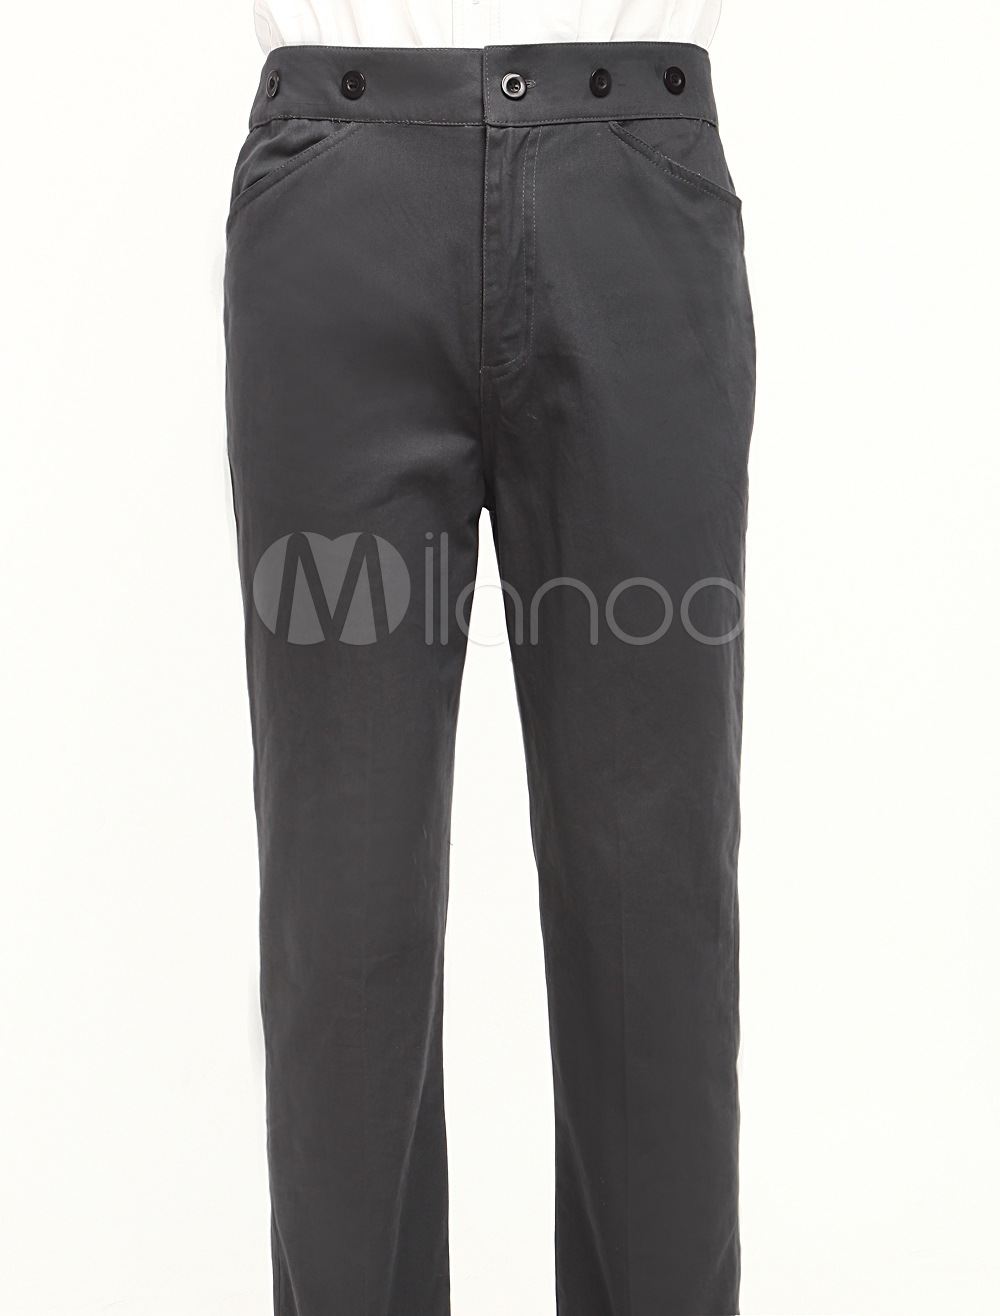 Popular Gray Cotton Mens Steampunk Trousers $49.99 AT vintagedancer.com